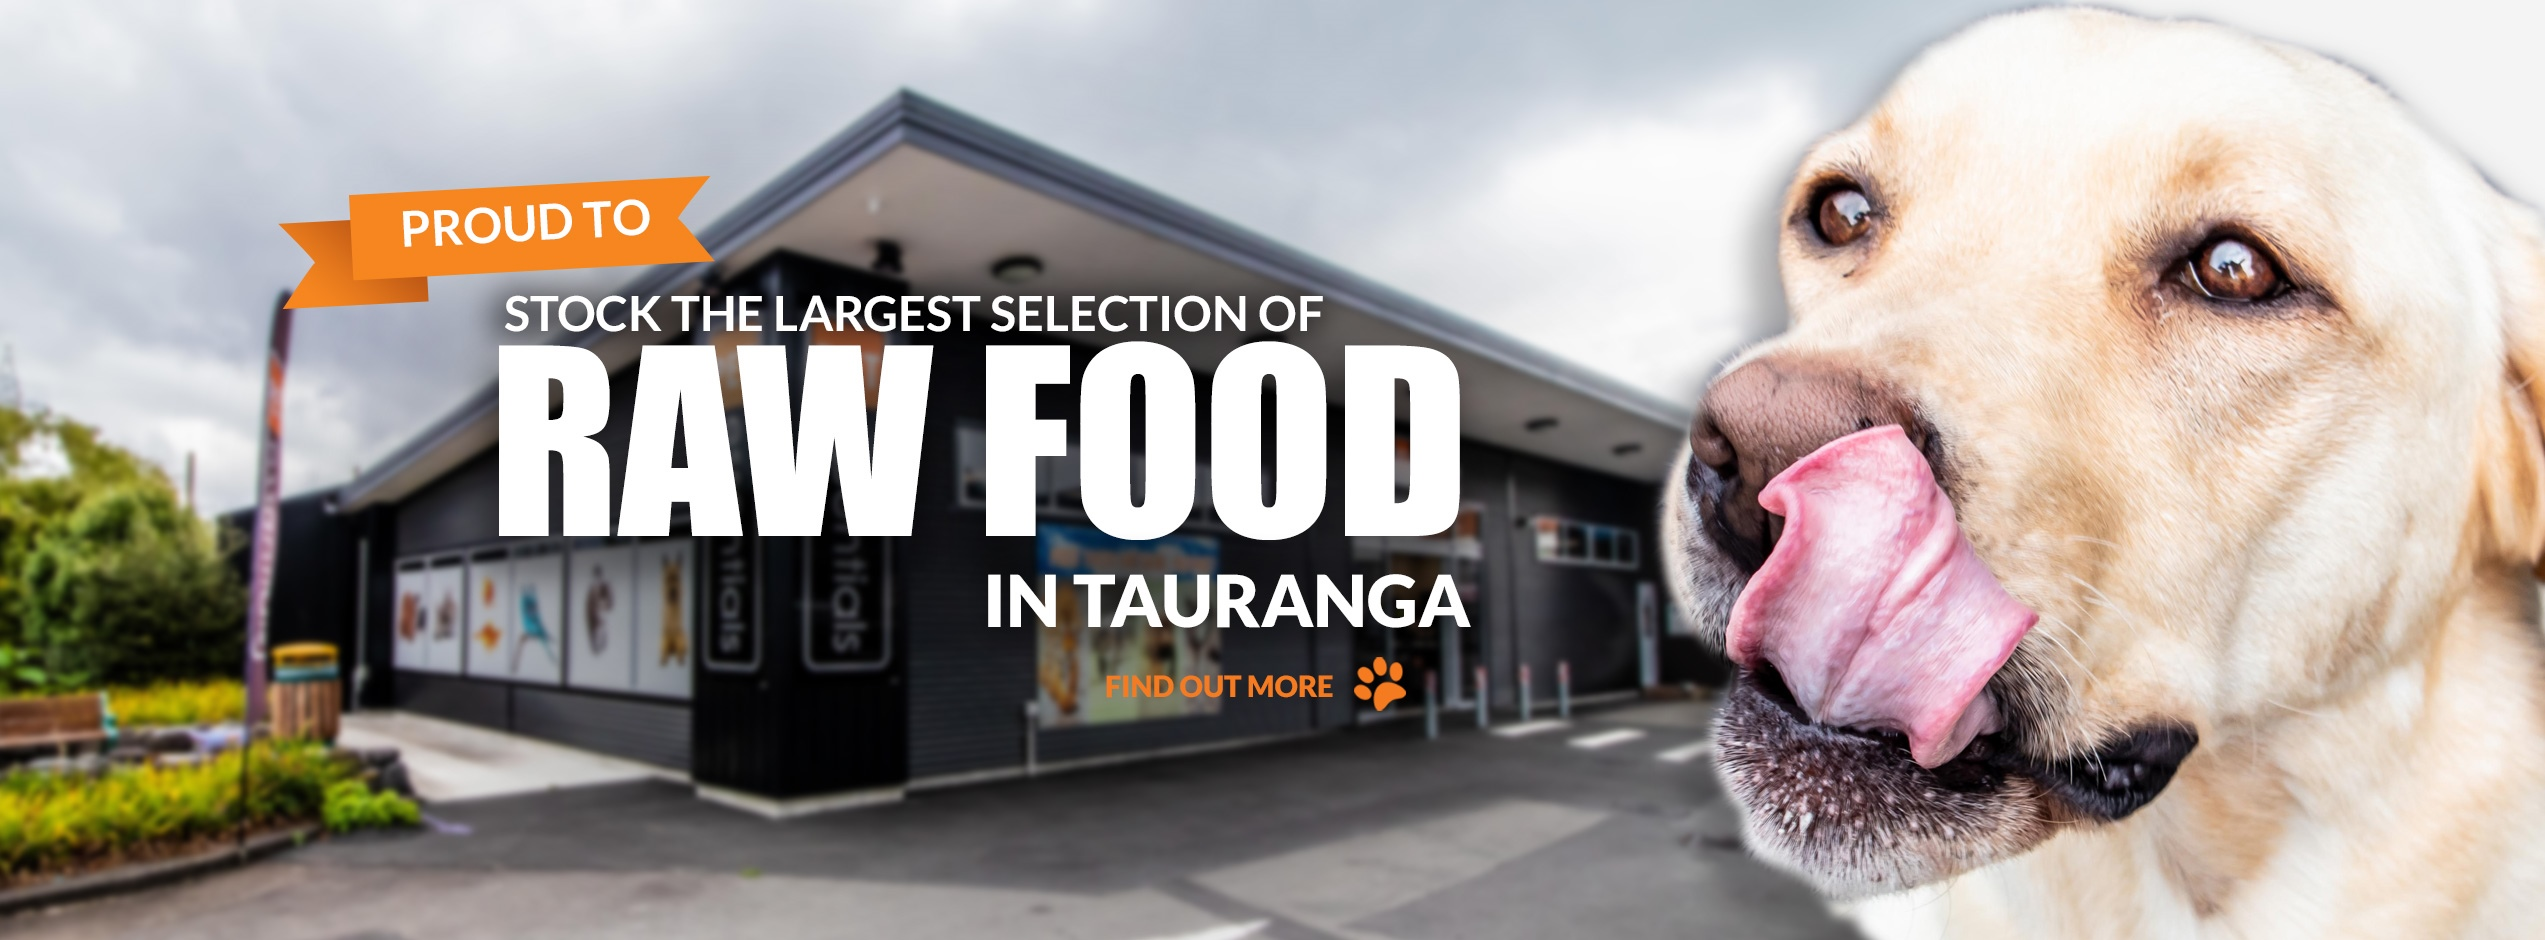 Proud to stock the largest selection of Raw Food in Tauranga